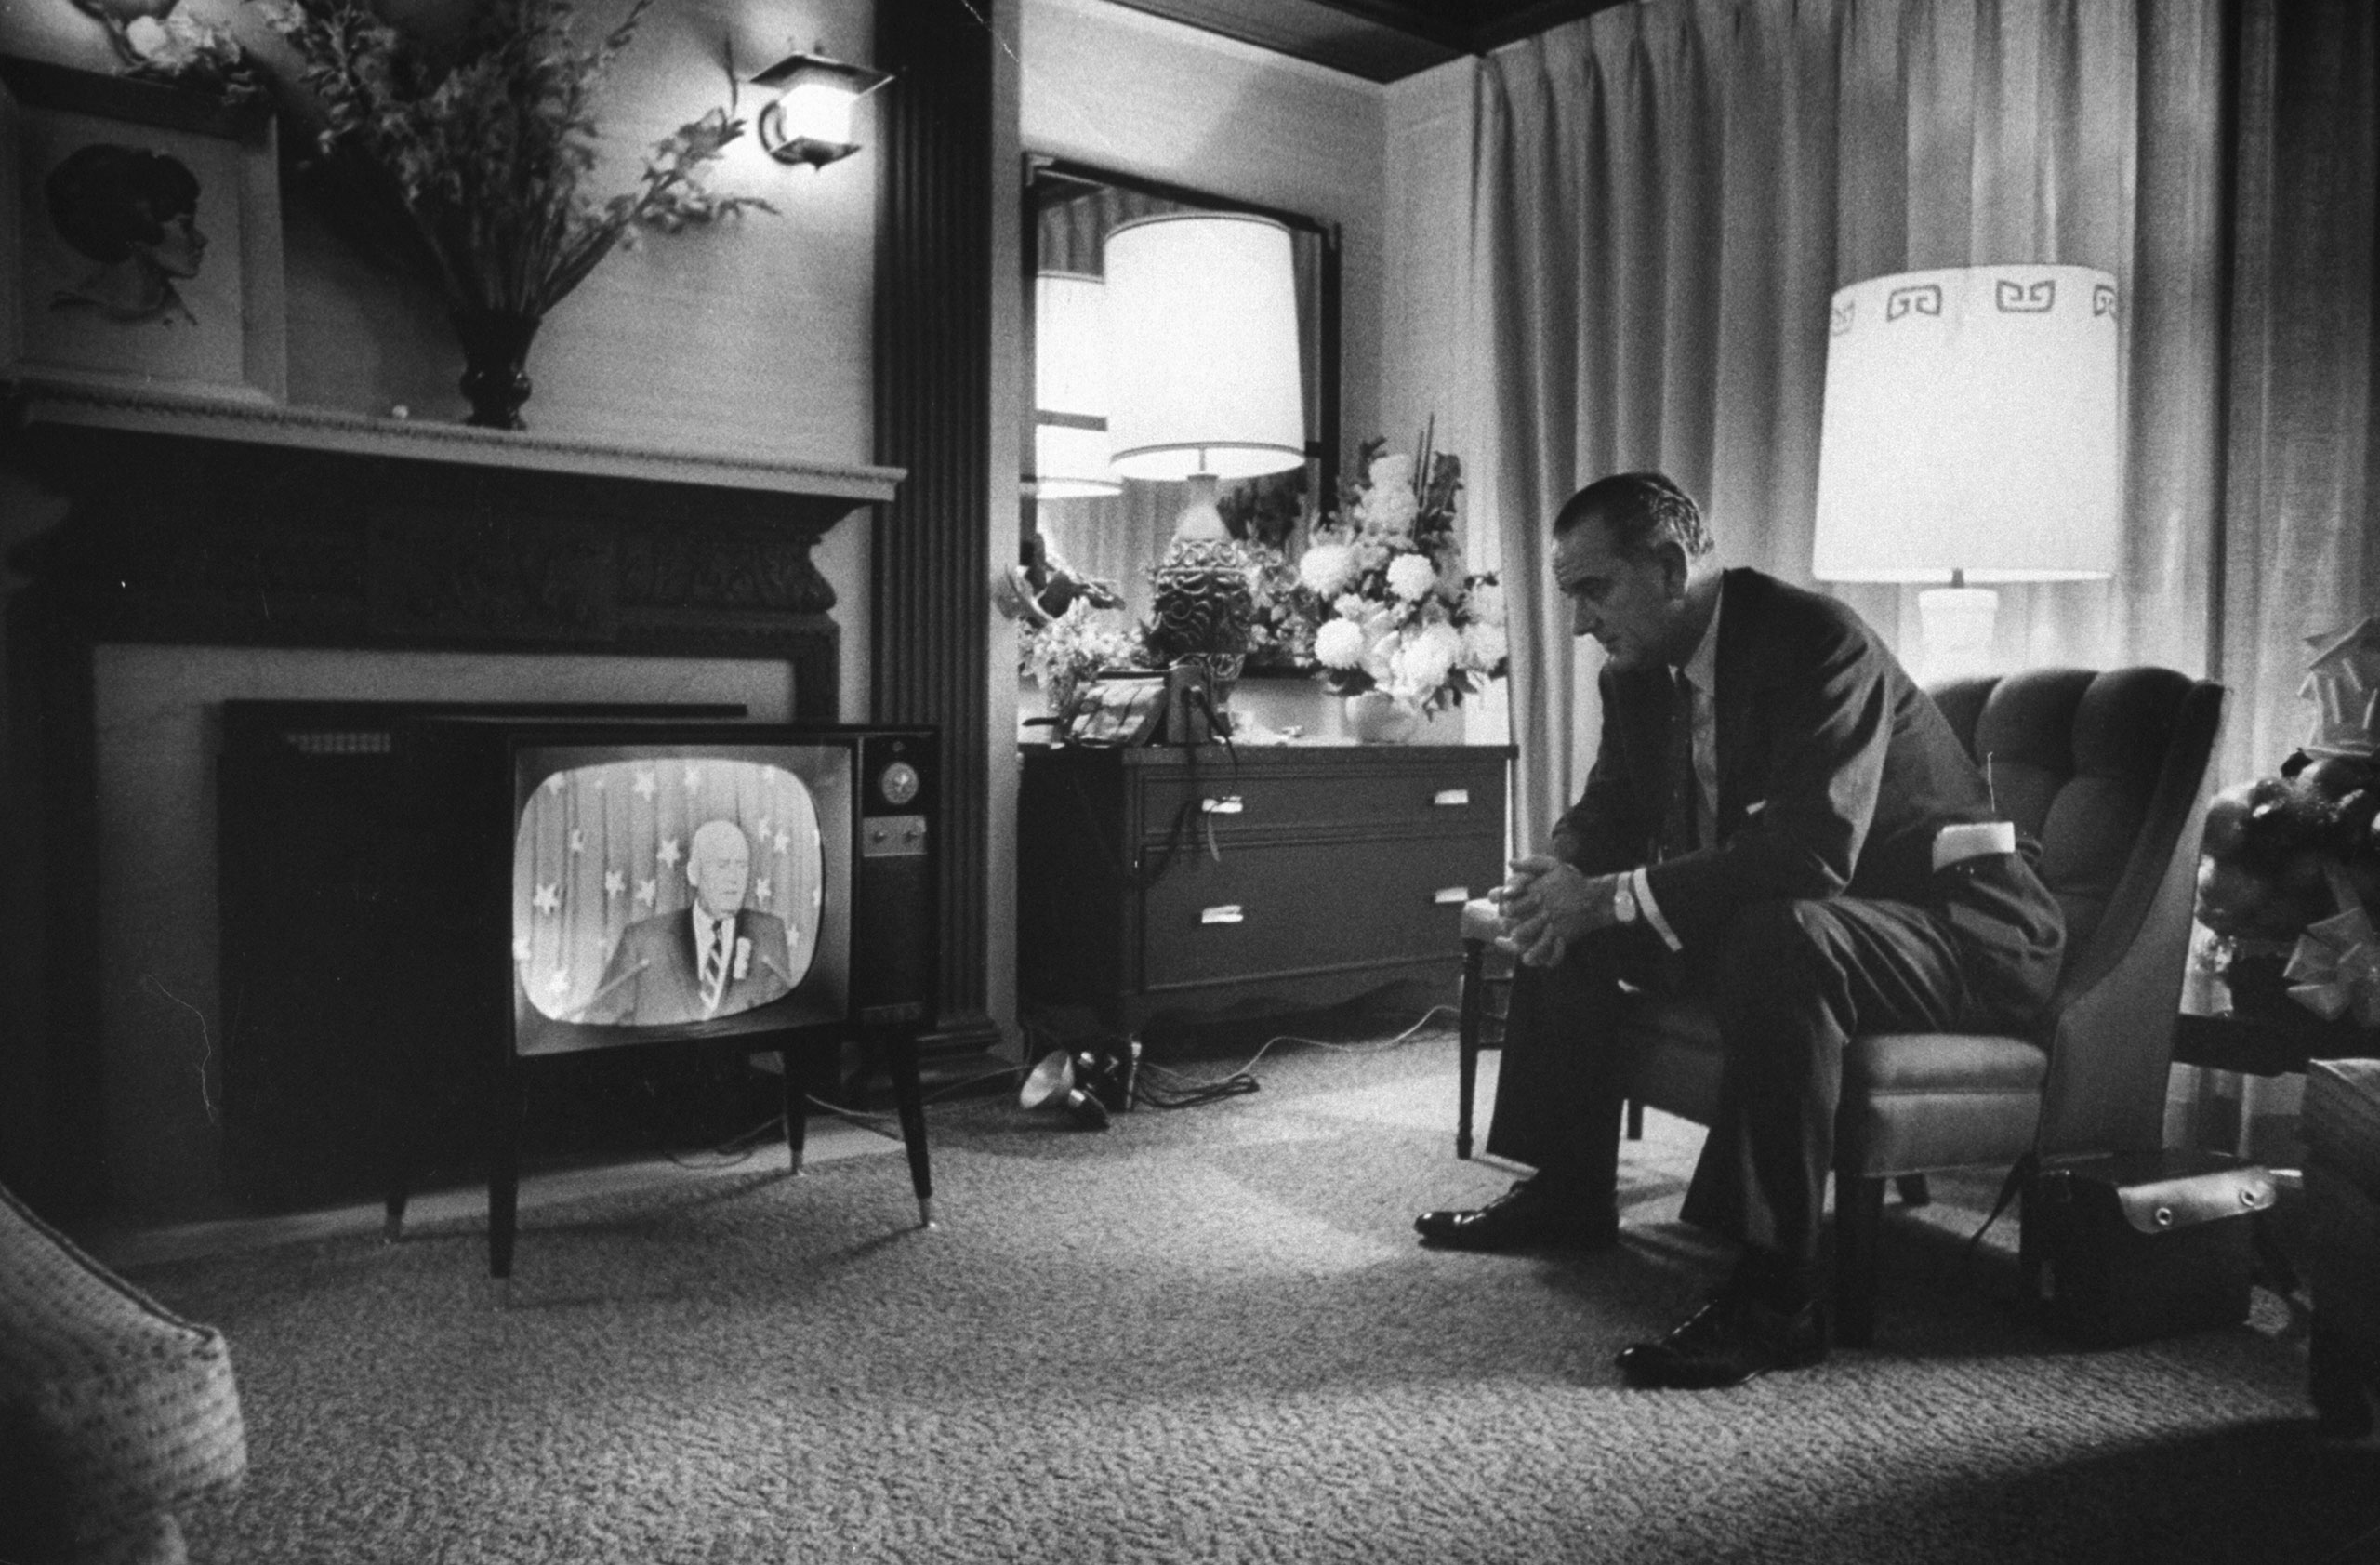 Eventual VP candidate Lyndon Johnson watches TV during the 1960 Democratic National Convention in Los Angeles.